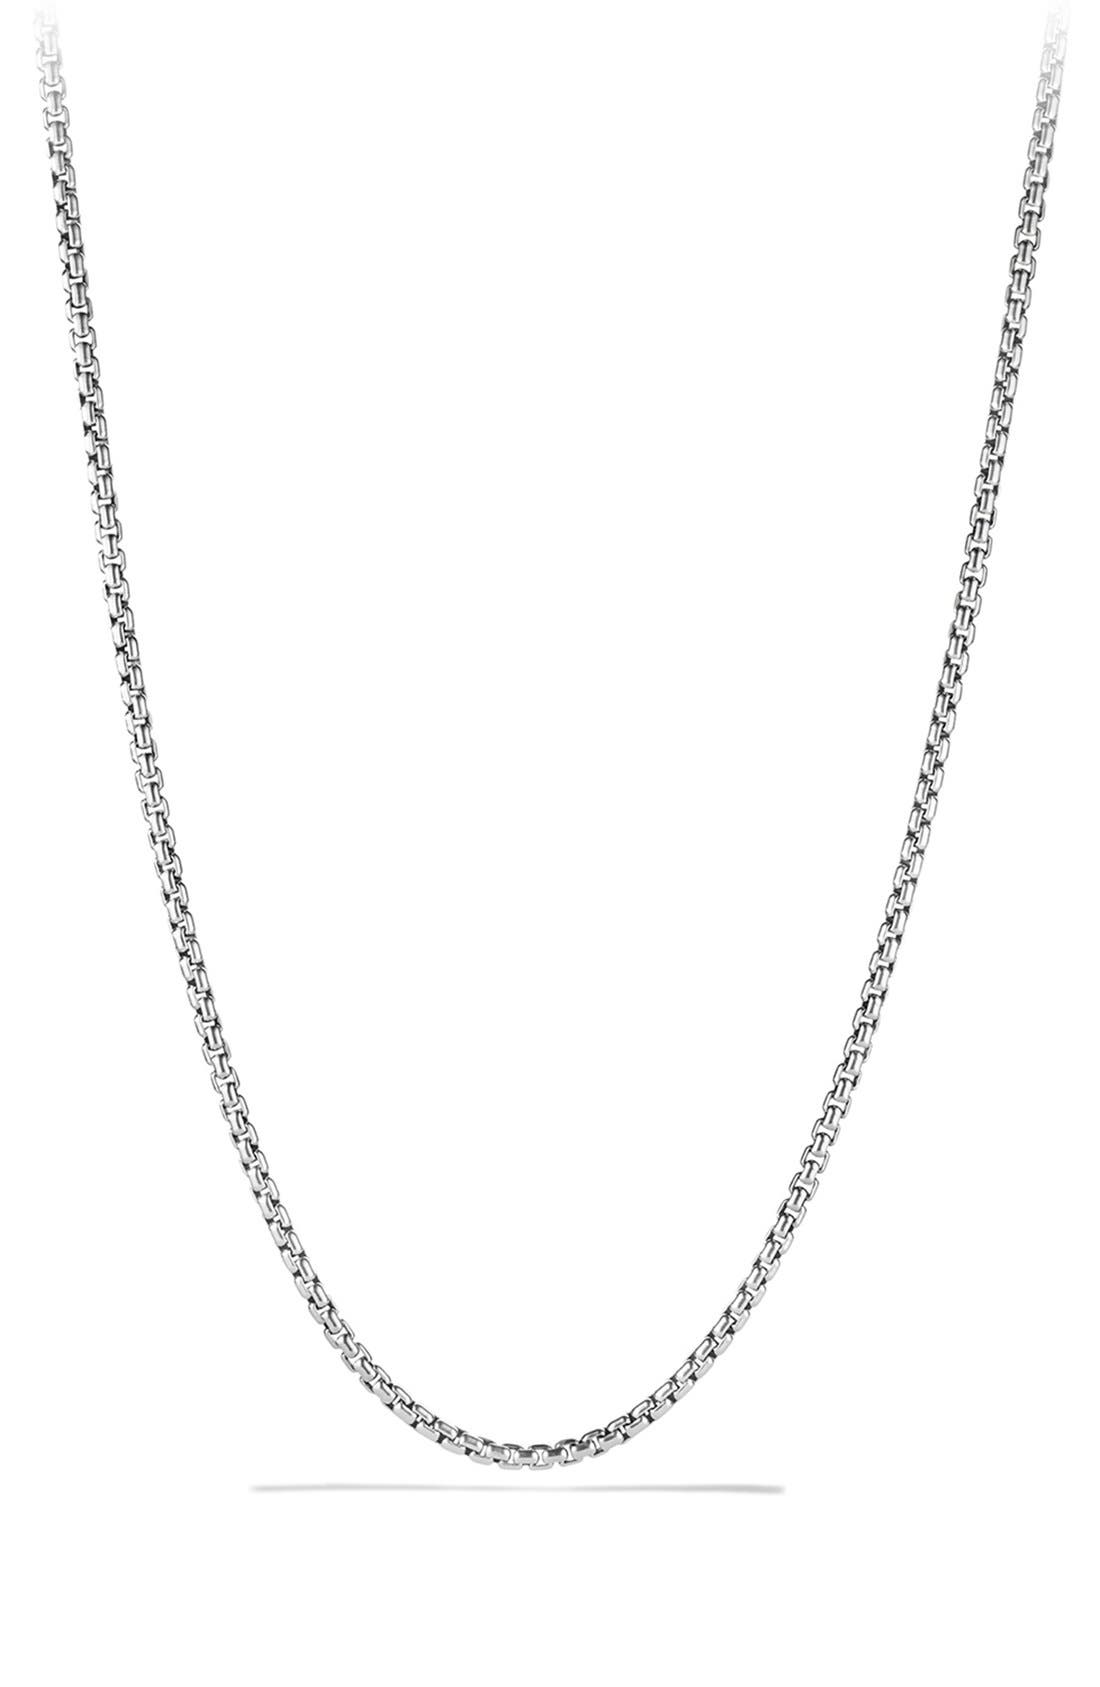 'Chain' Box Chain Necklace,                             Main thumbnail 1, color,                             SILVER